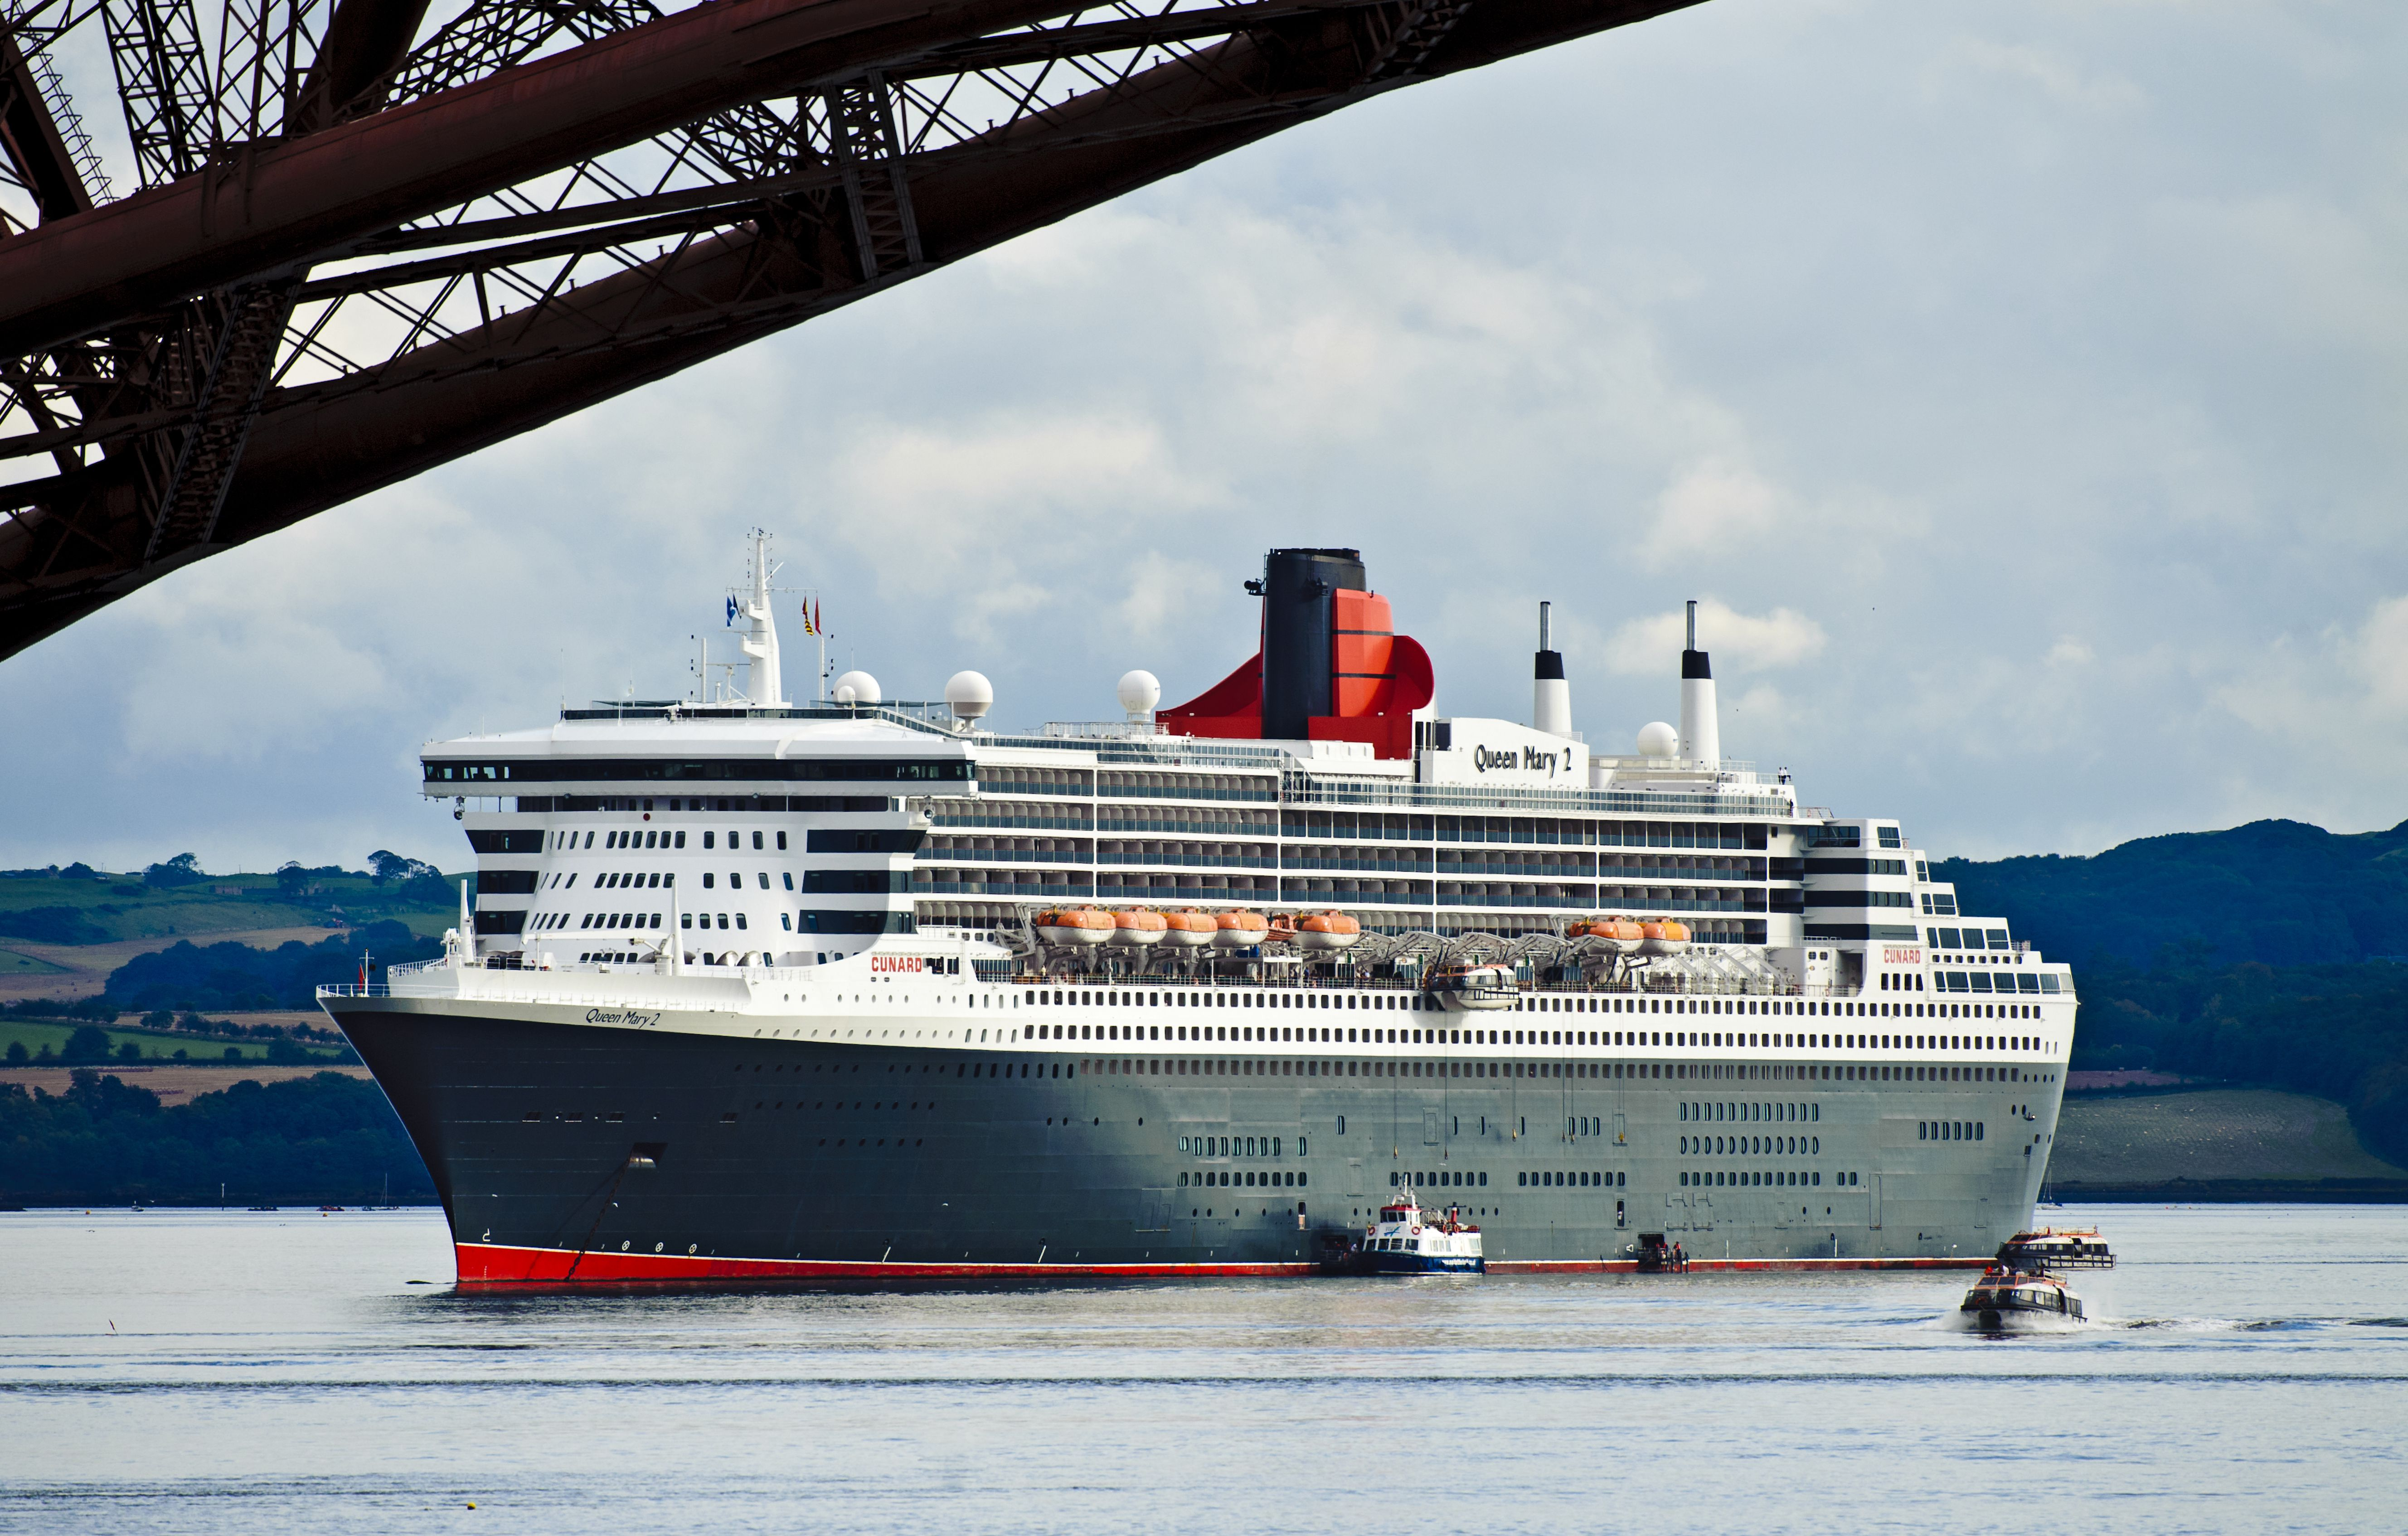 Queen Mary 2 of the Cunard Line